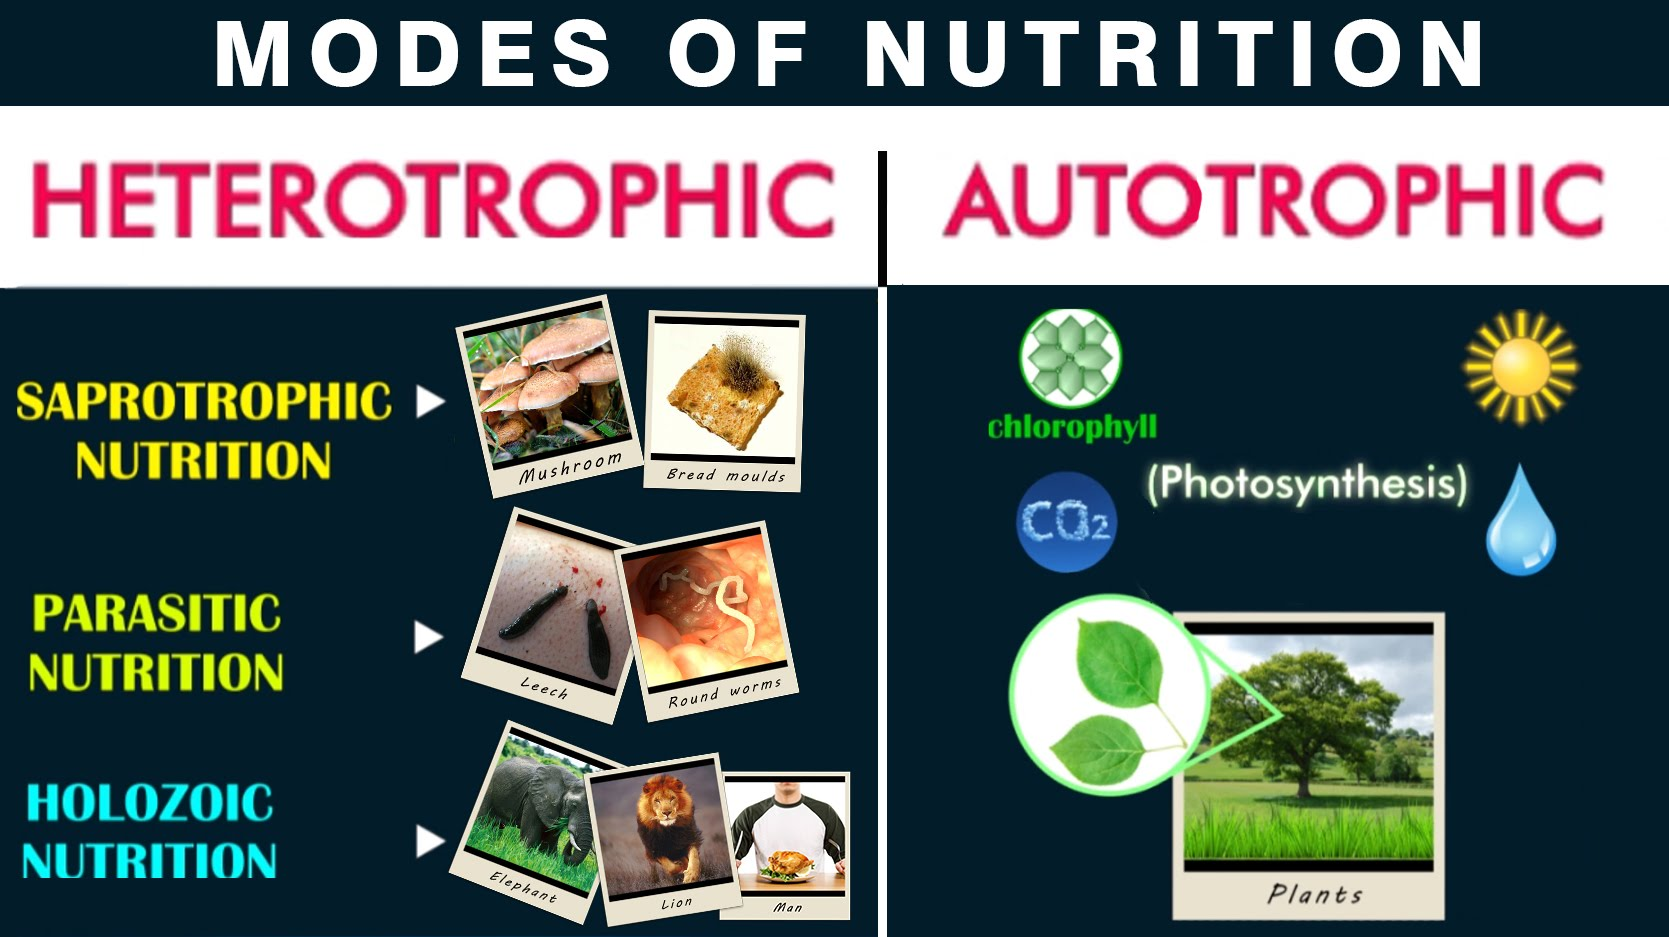 Nutrition And Mode Of Nutrition